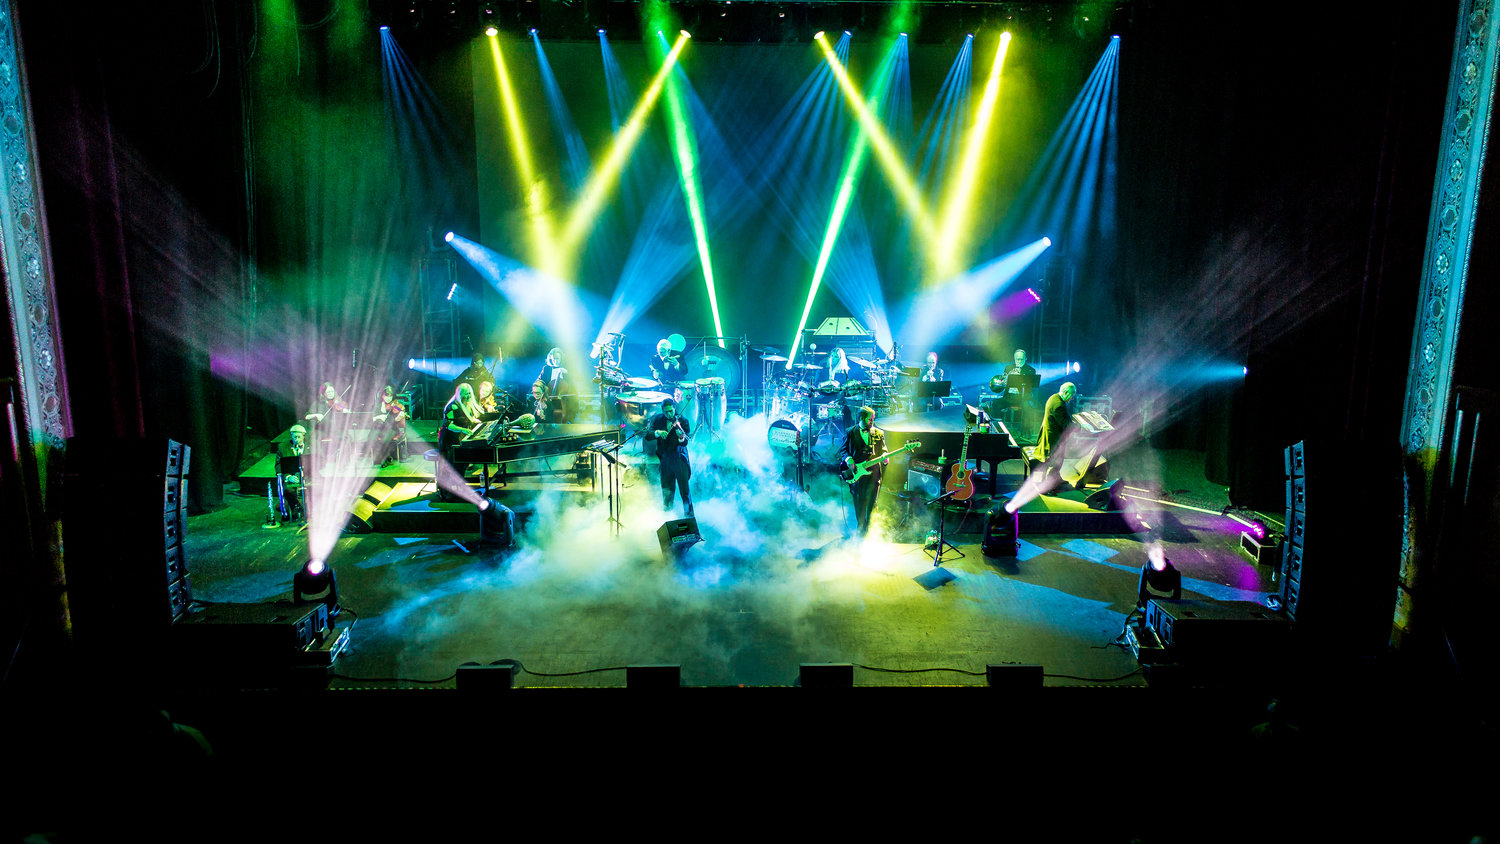 Mannheim Steamroller brings their festive holiday concert to Tilles Center on Dec. 7.